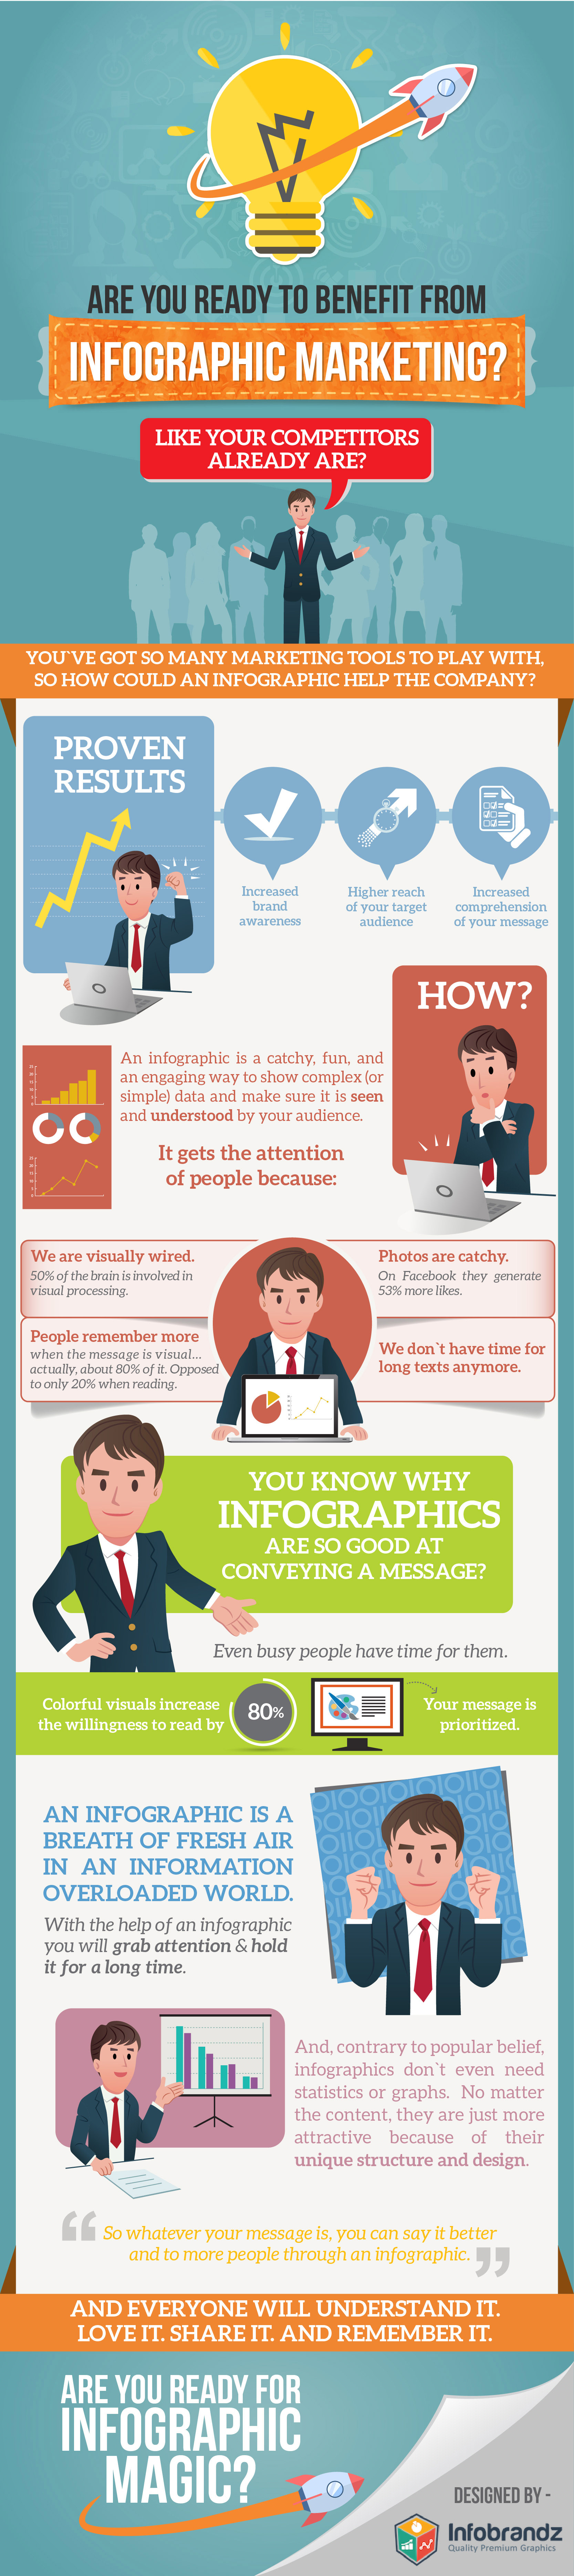 Infographic Marketing Design 01